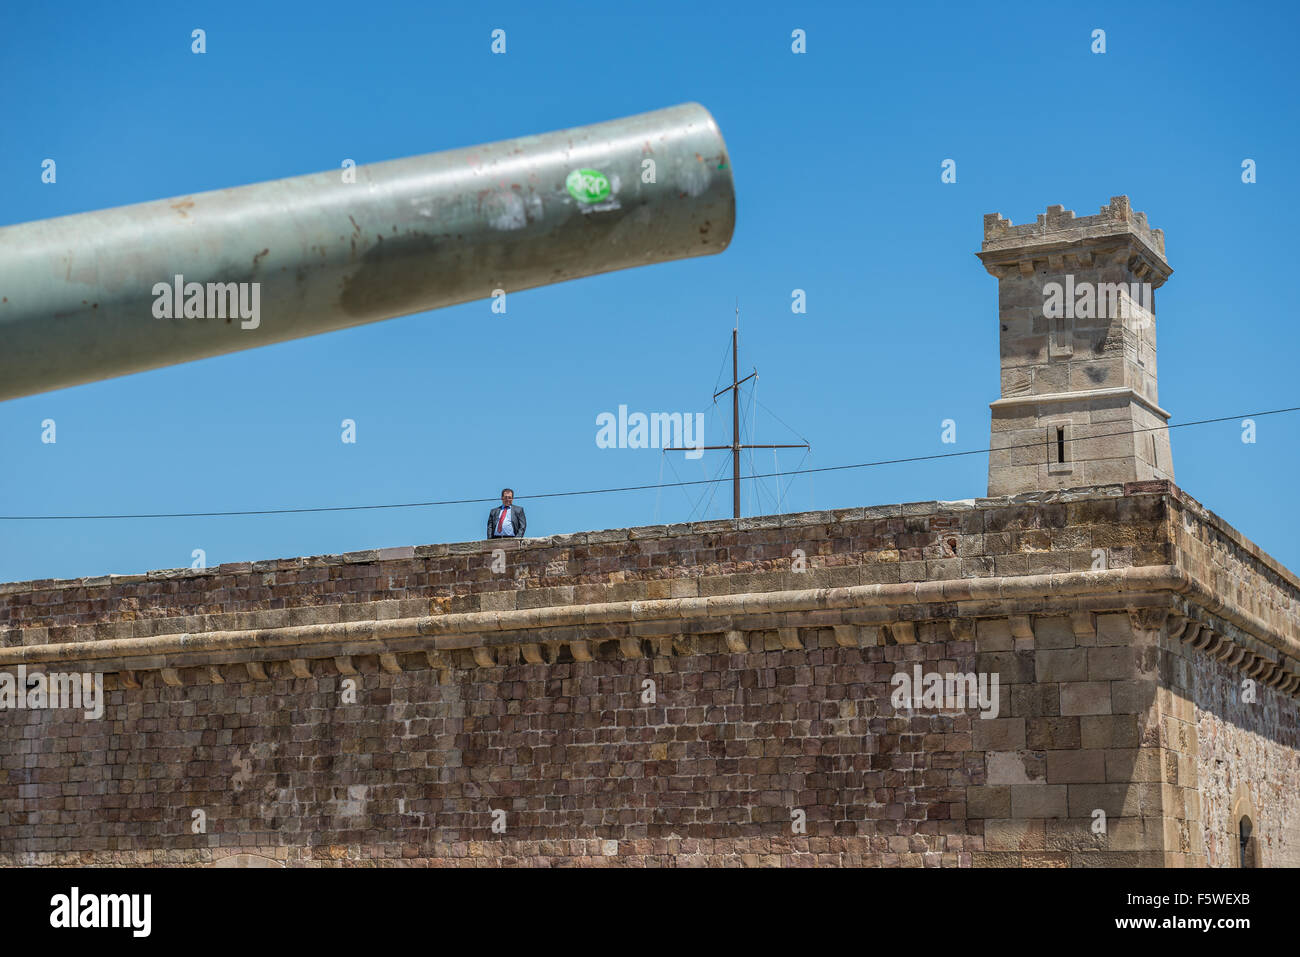 Old Cannon In Montjuic Castle (Castillo De Montjuich) Old Military Fortress  On Jewish Mountain In Barcelona, Spain